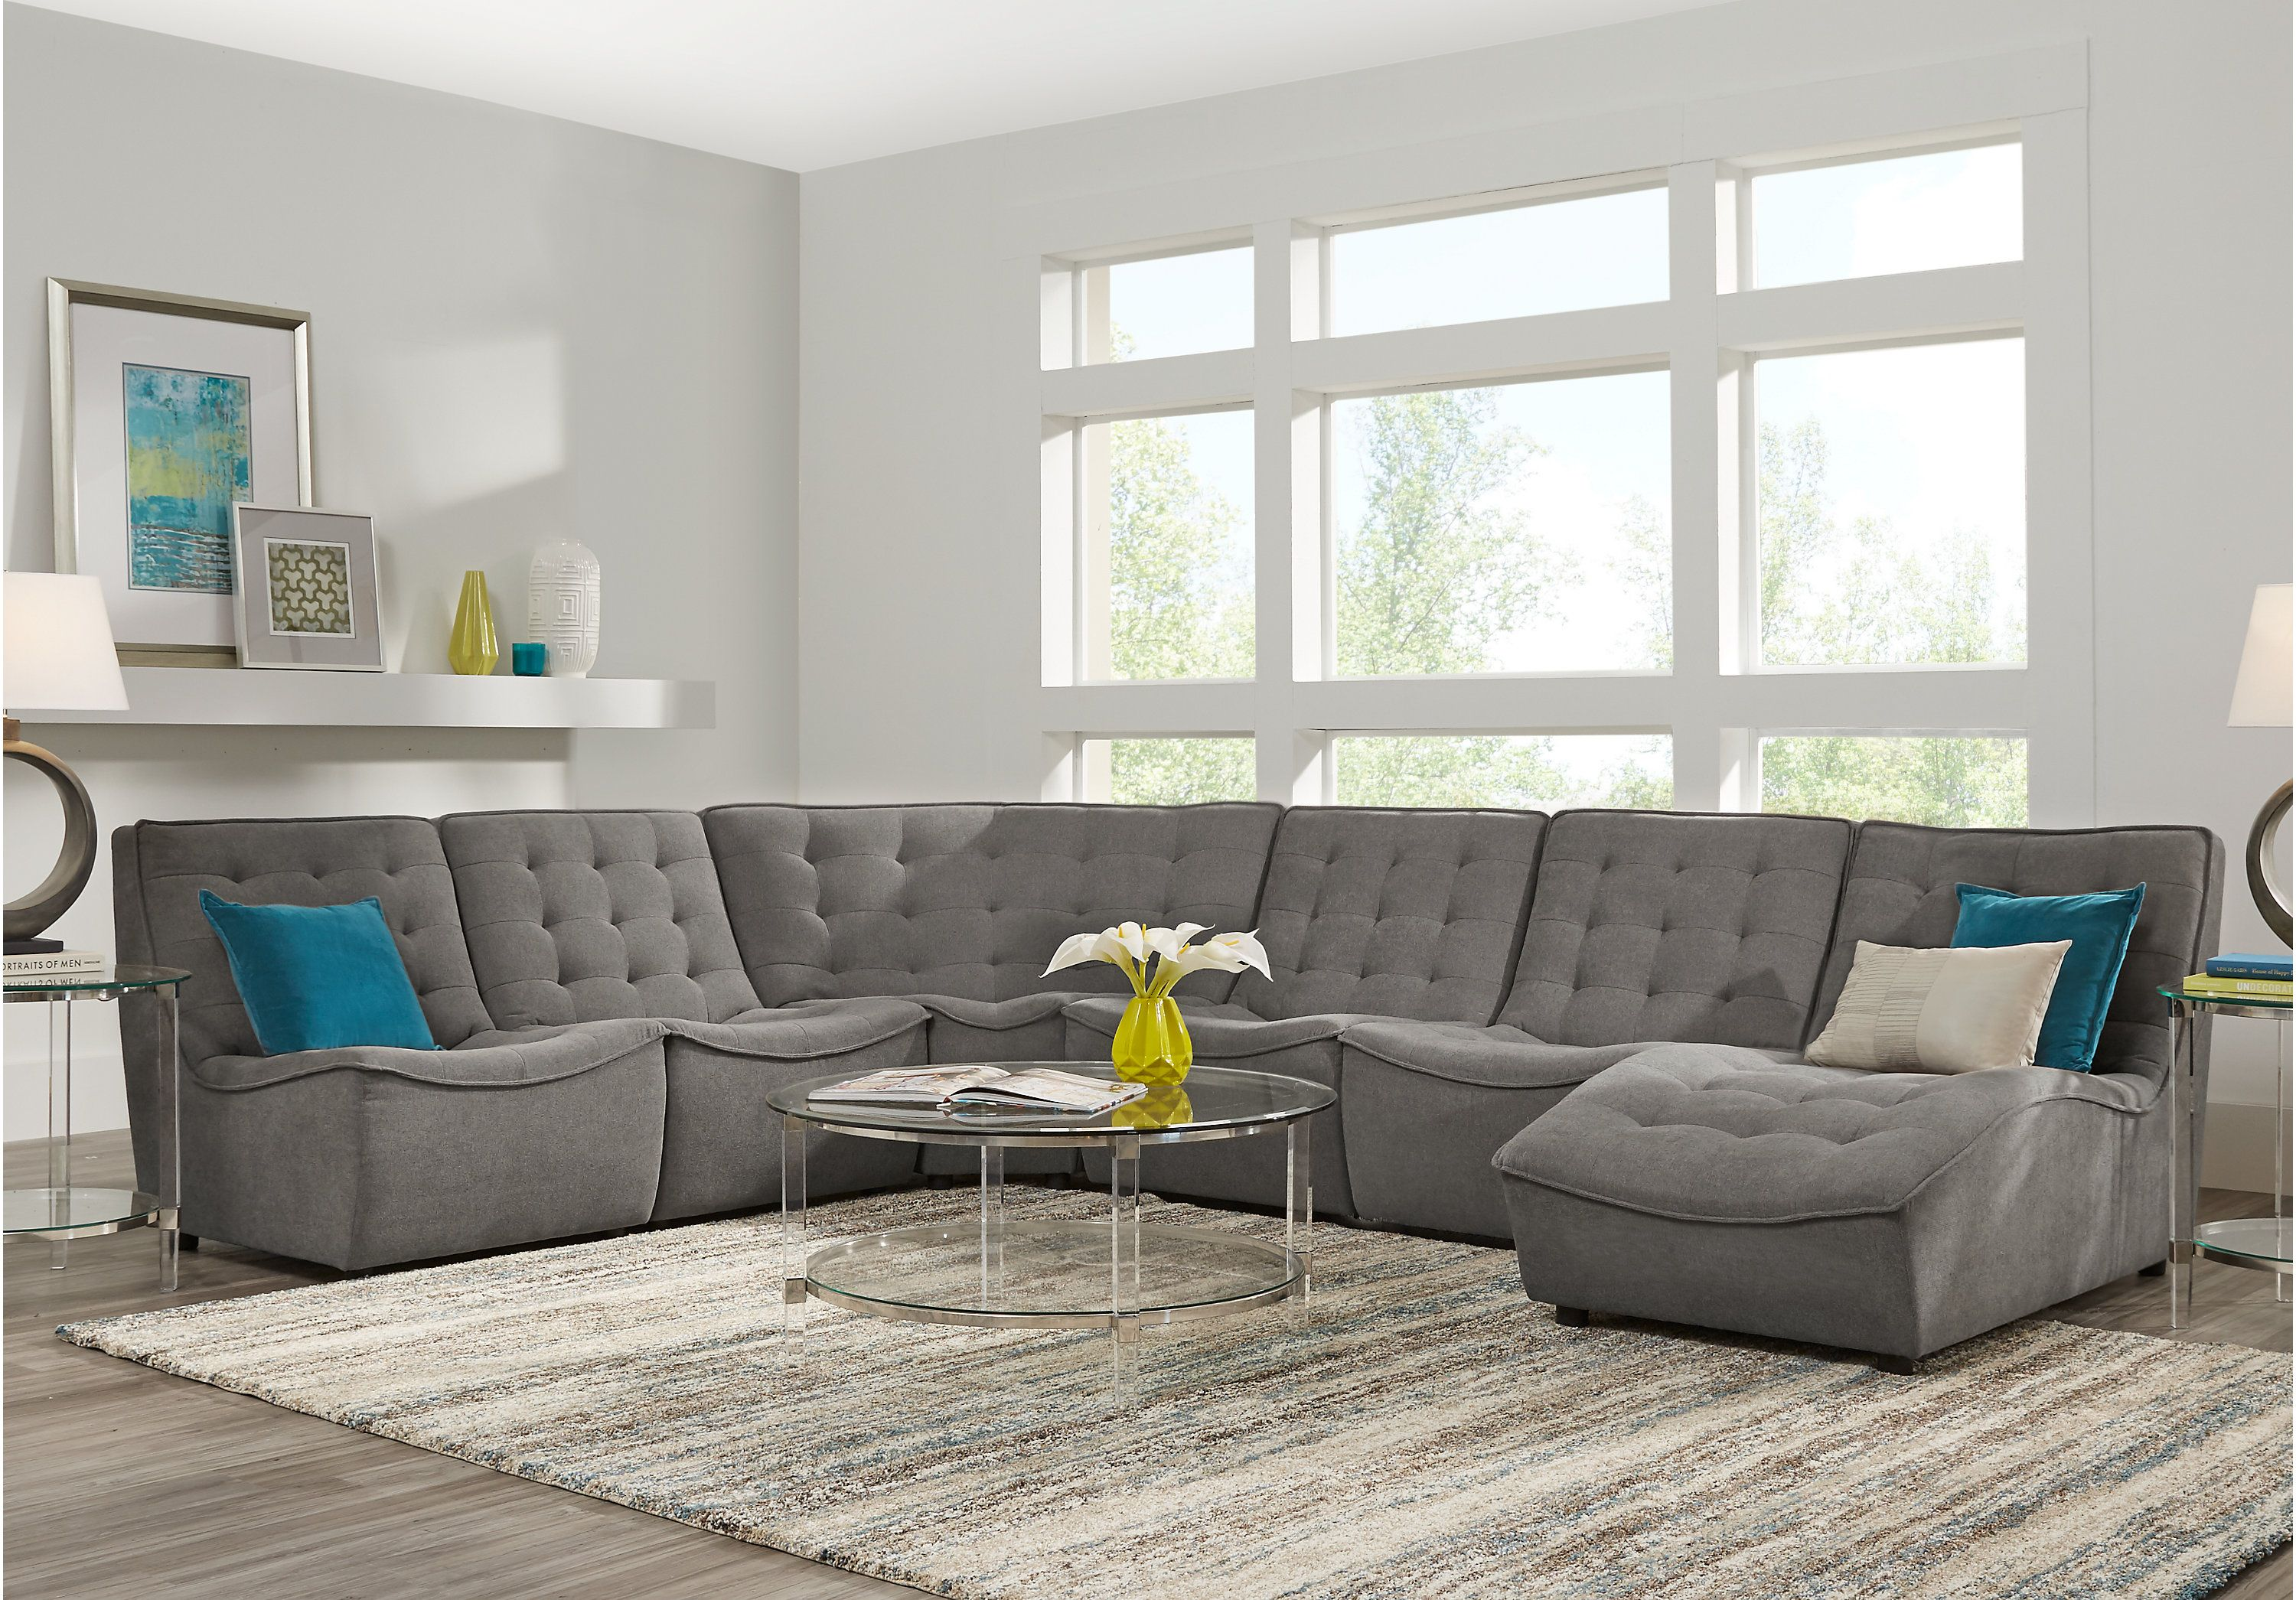 Nathan Square Gray 6 Pc Sectional Living Room Sets Gray